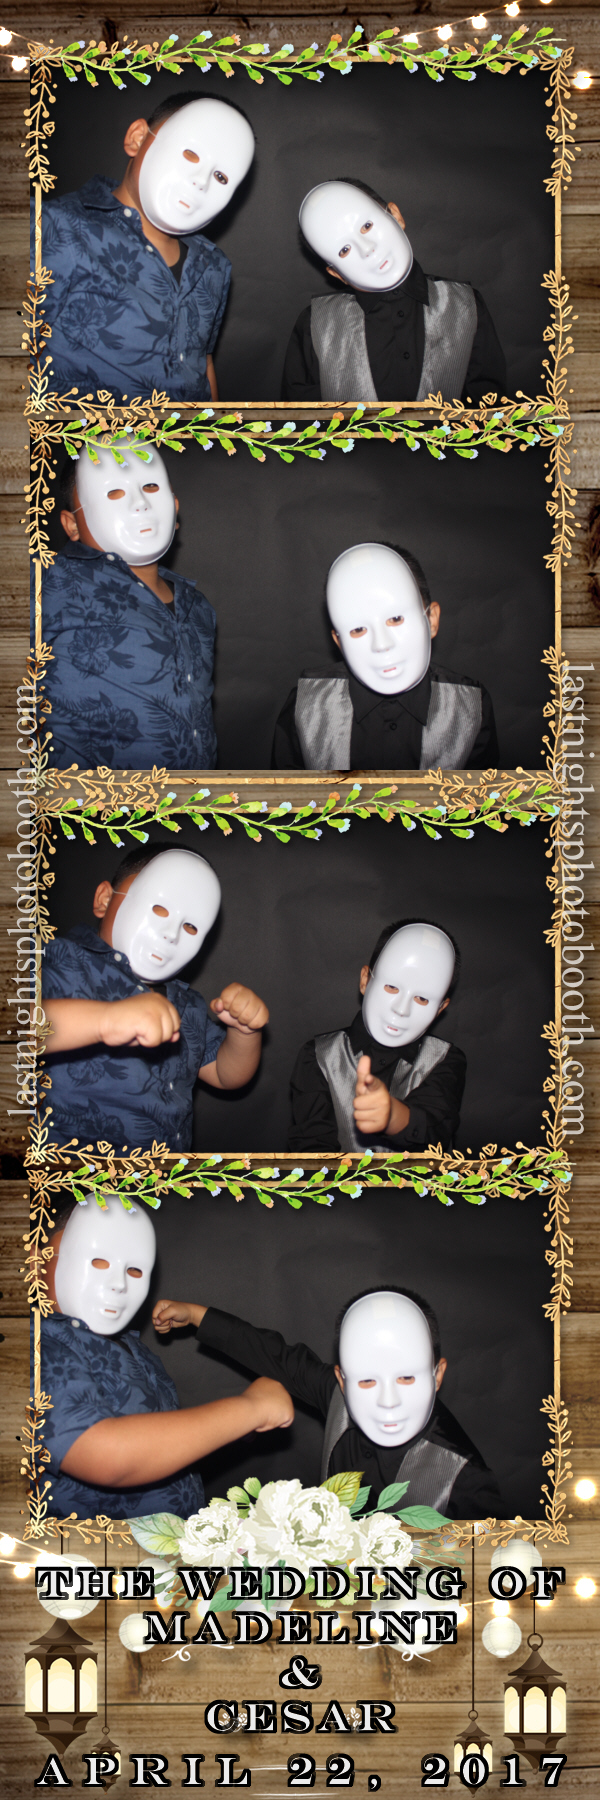 Photo Booth Rental For Madeline and Cesar Wedding_62